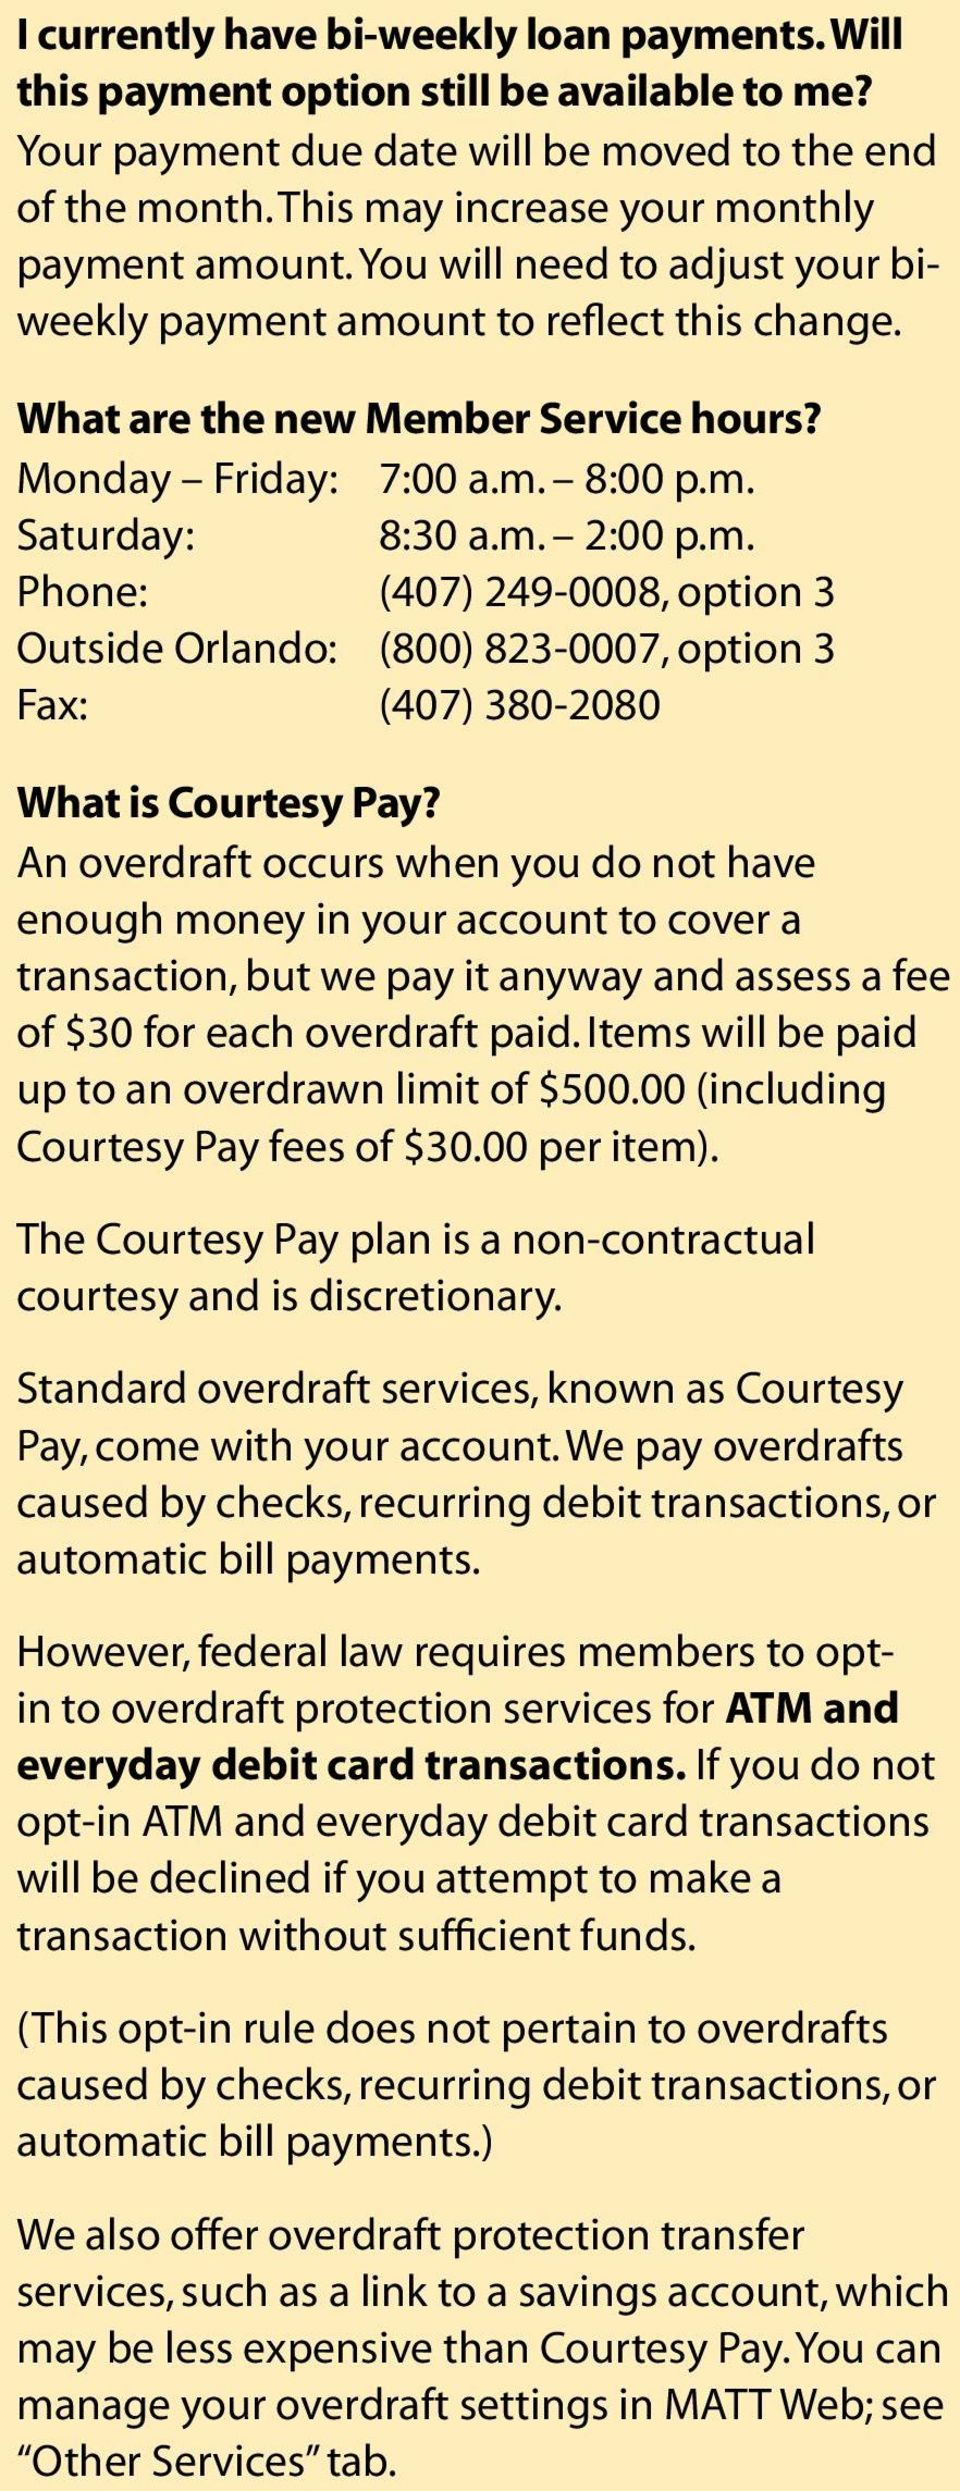 An overdraft occurs when you do not have enough money in your account to cover a transaction, but we pay it anyway and assess a fee of $30 for each overdraft paid.